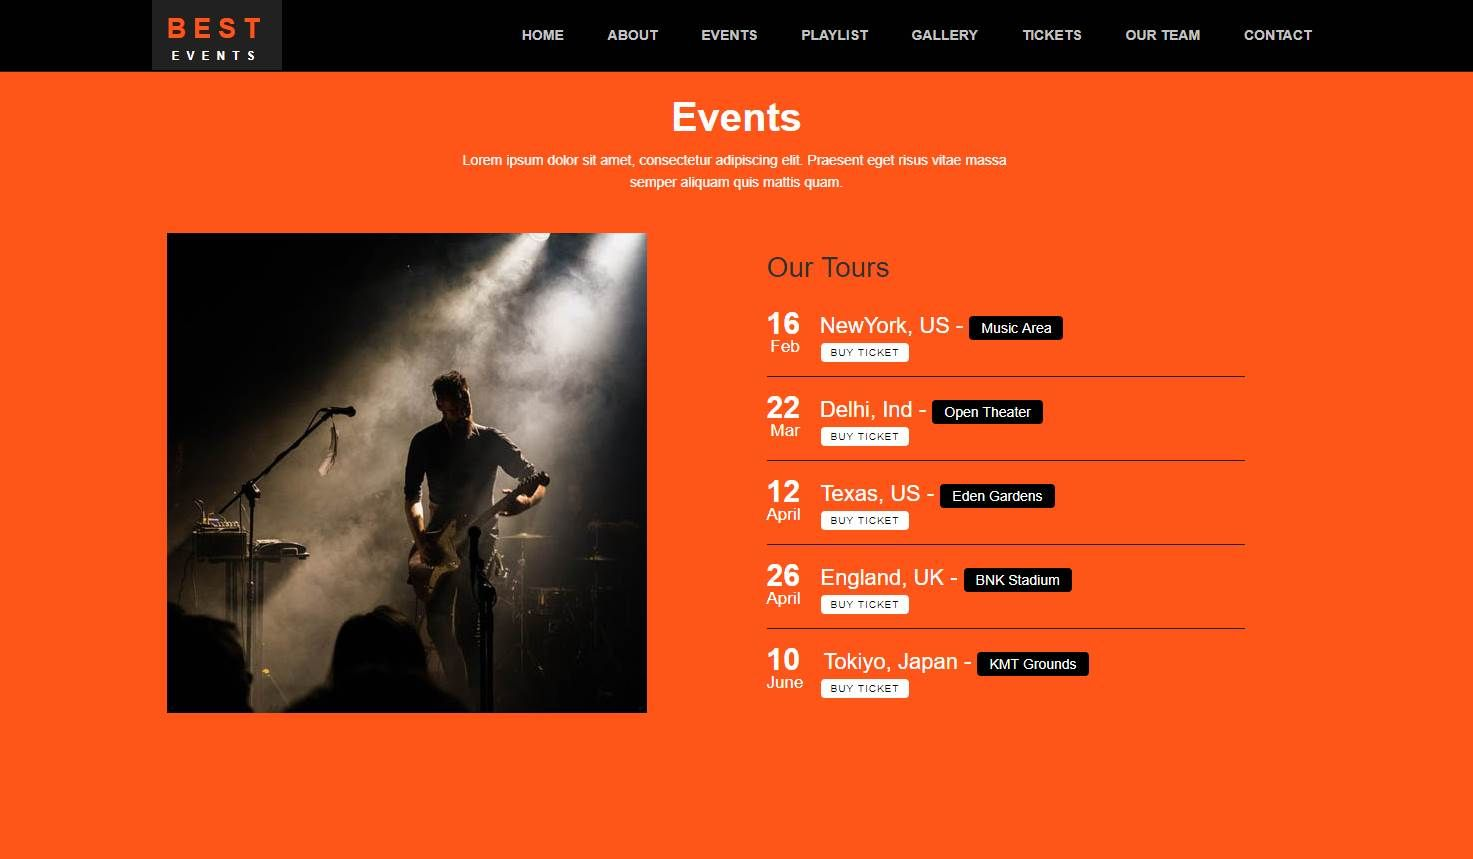 Best Event: An HTML5 Event Management Website Template